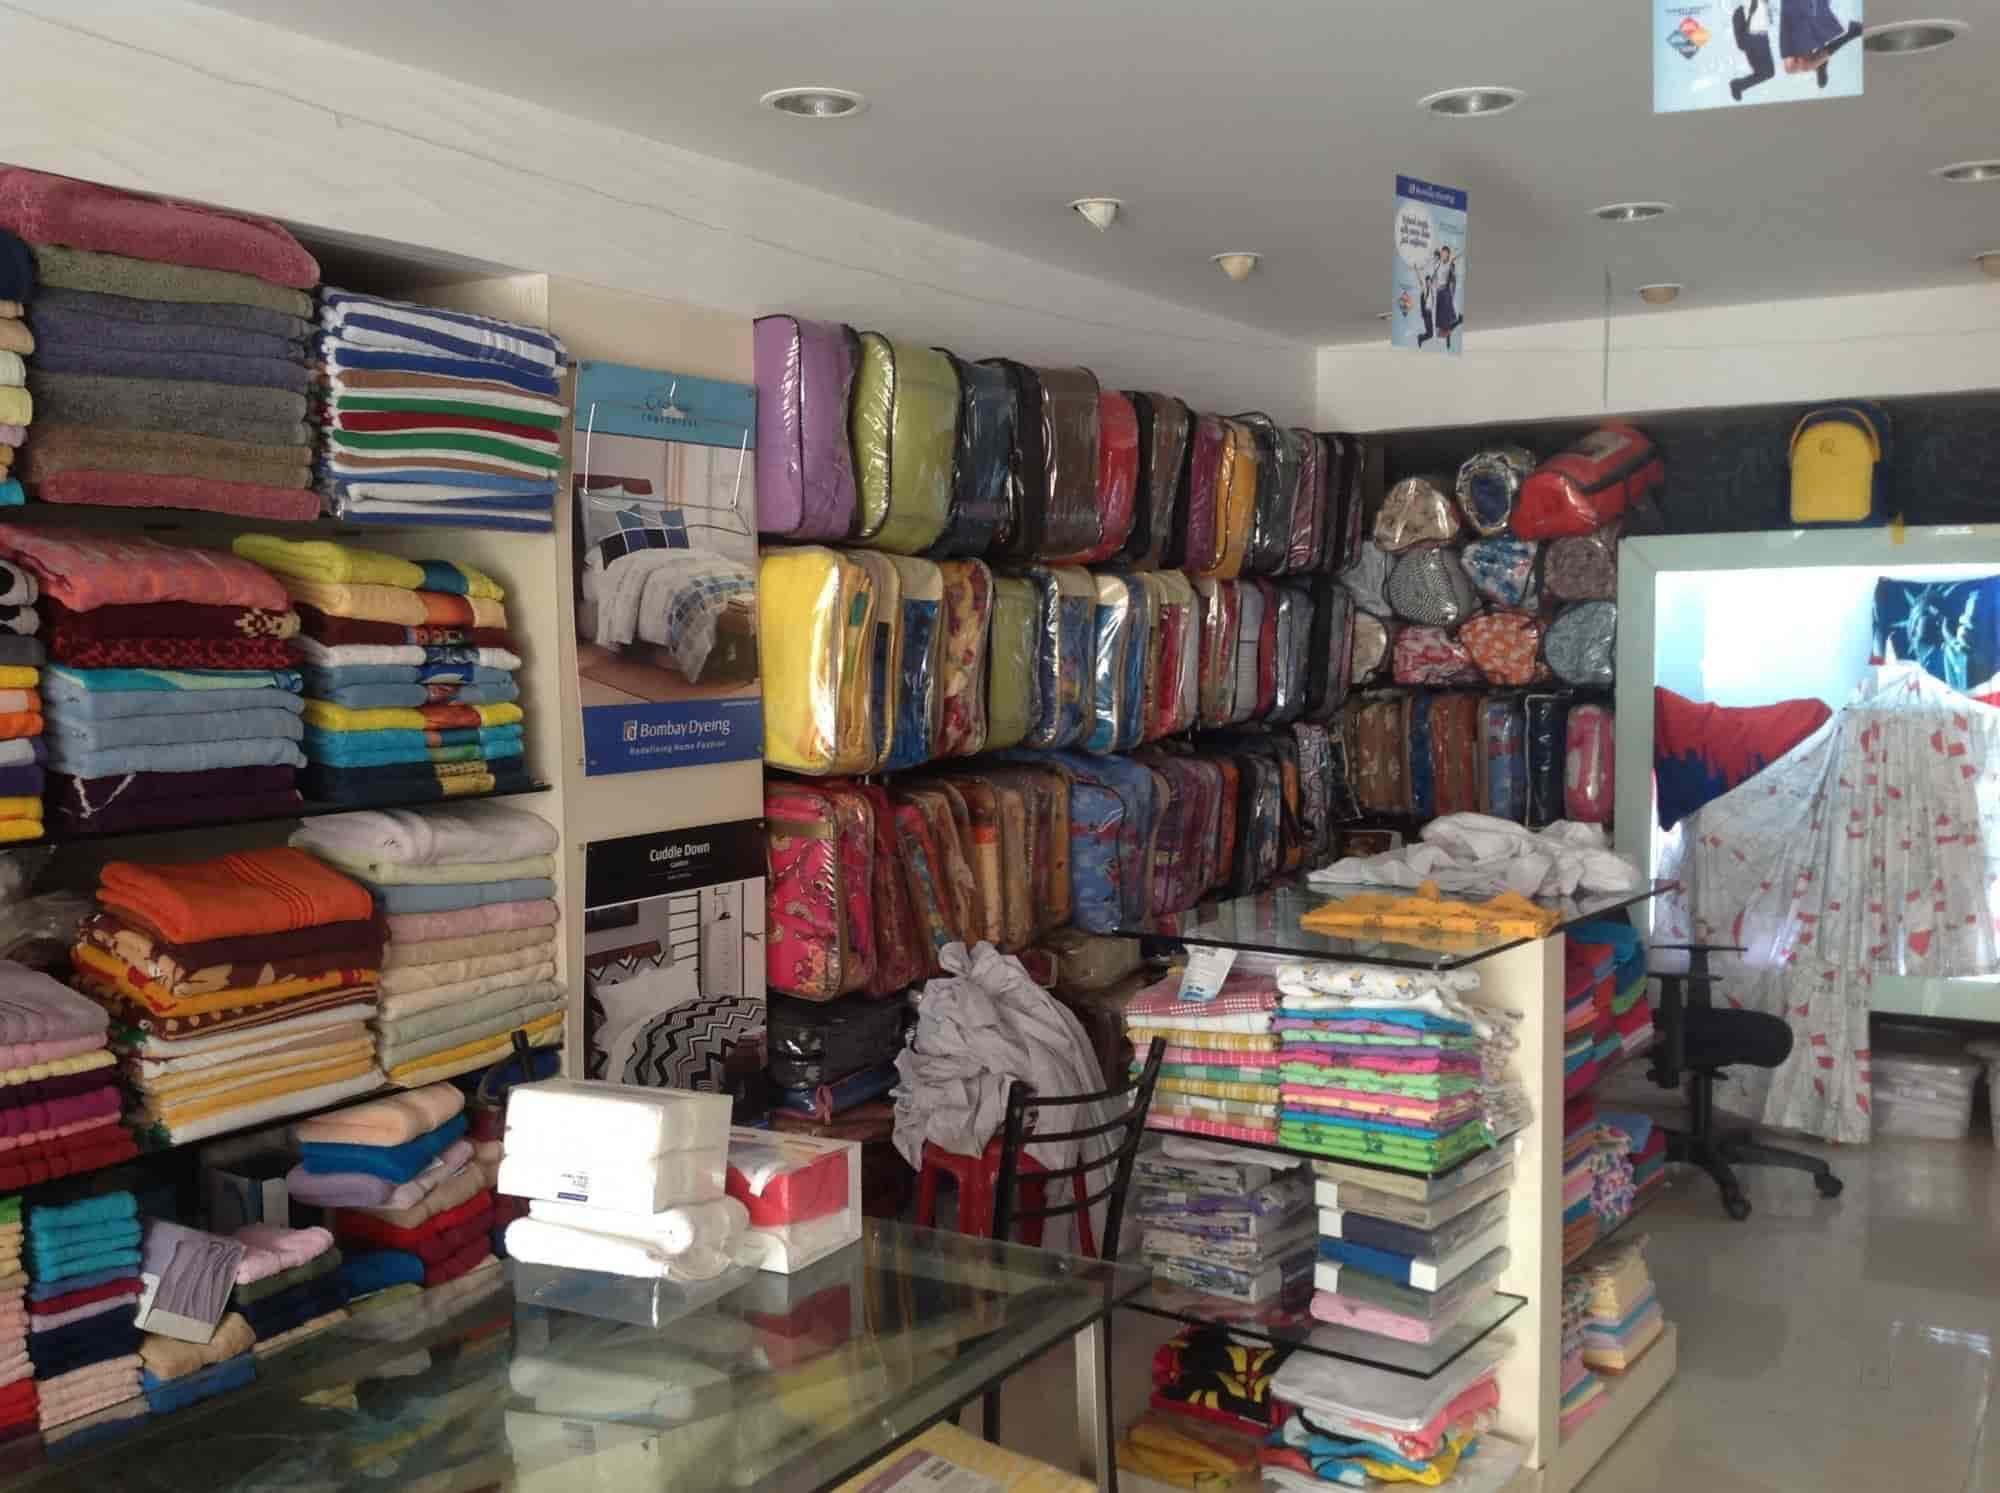 Bombay Dyeing Exclusive Showroom, Madhapur   Bombay Dyeing Exclusive Store    Bed Sheet Retailers Bombay Dyeing In Hyderabad   Justdial